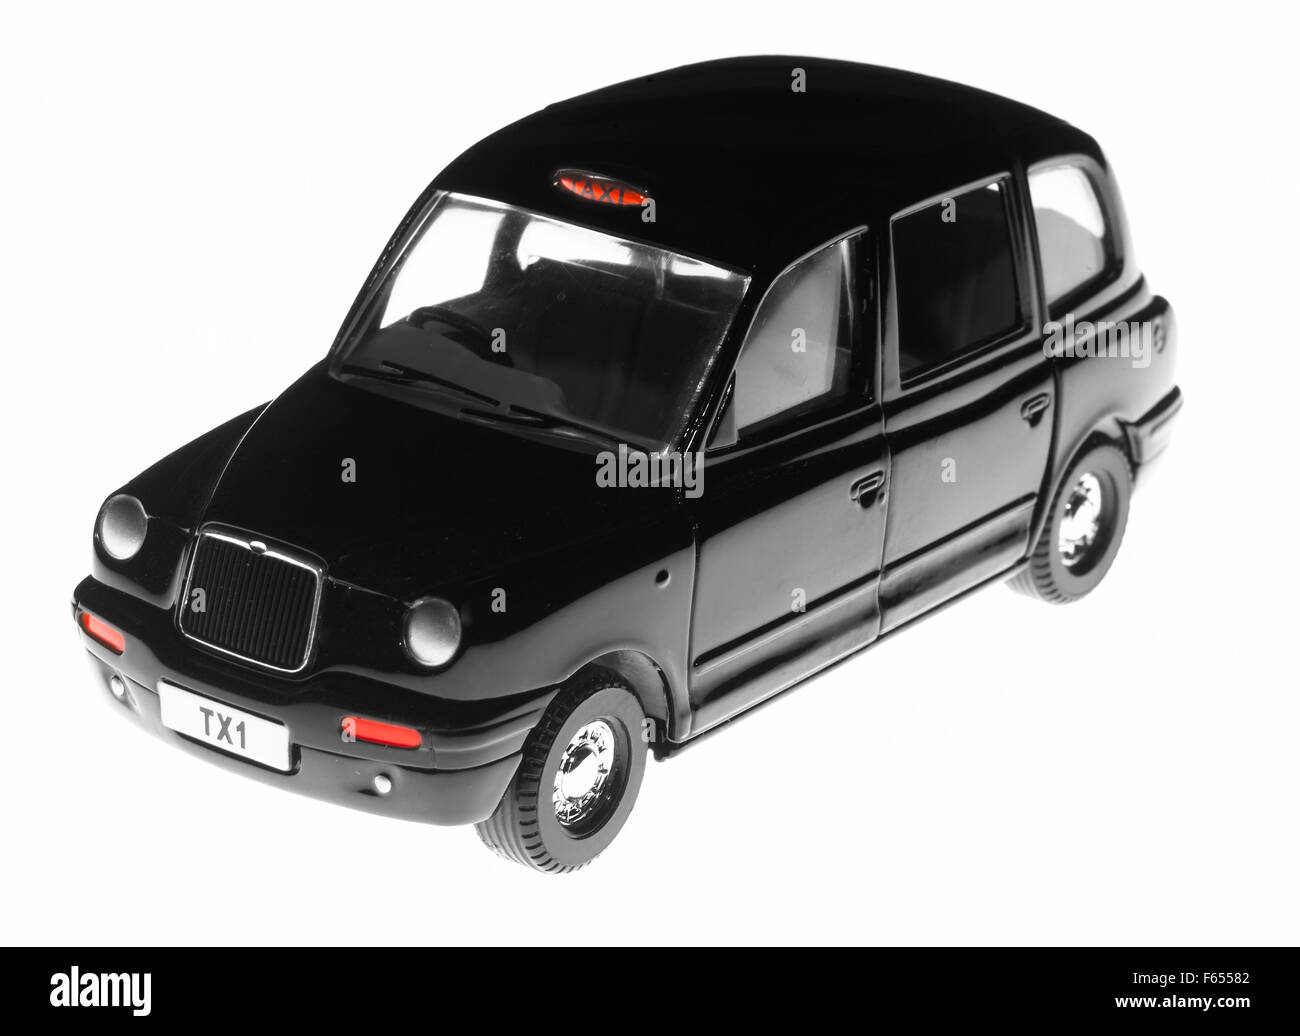 London black cab taxi - Stock Image